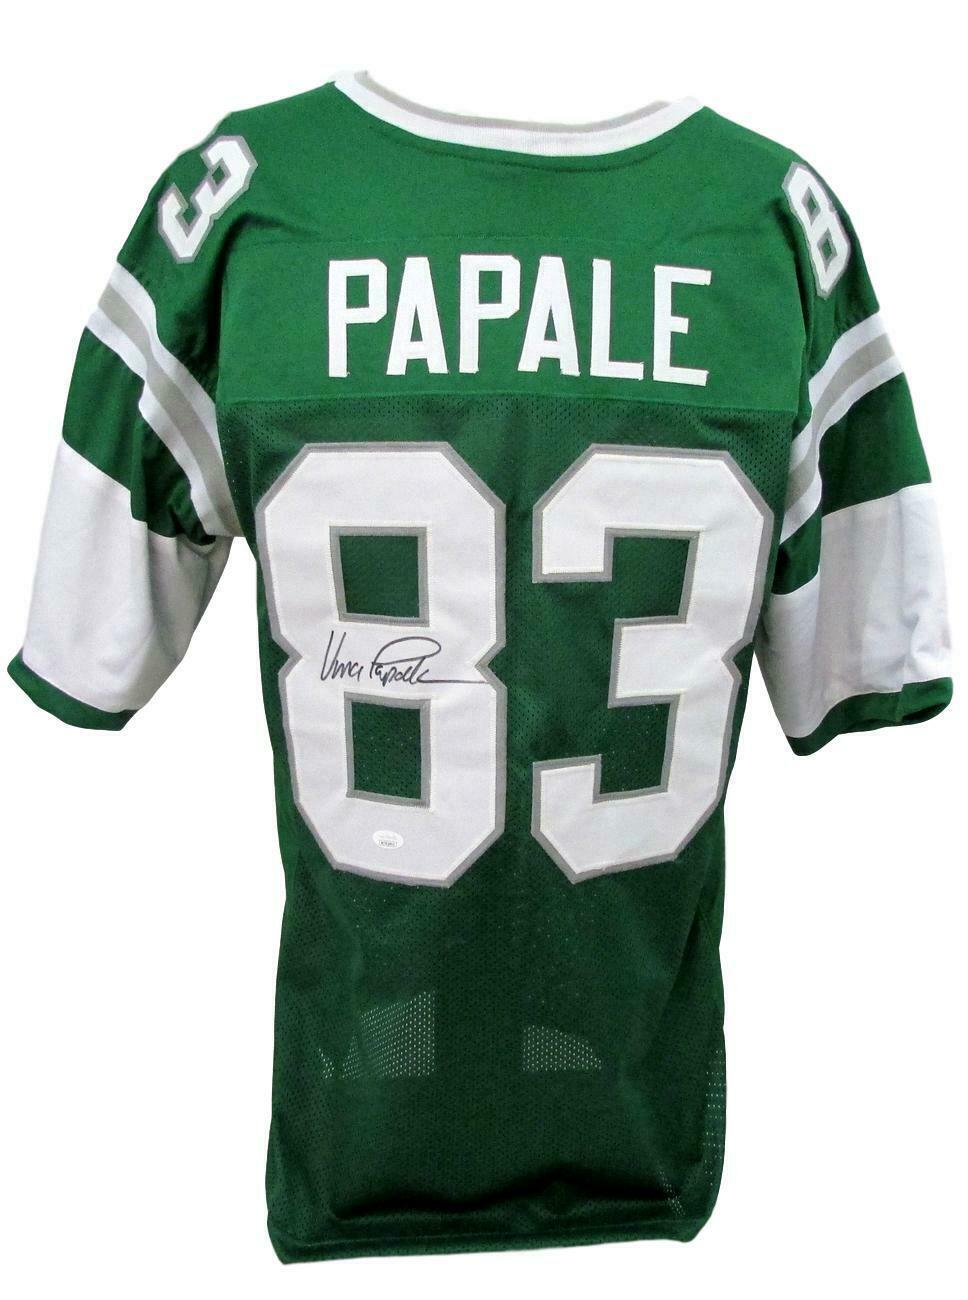 Philadelphia Eagles Vince Papale Signed Green Jersey with JSA COA